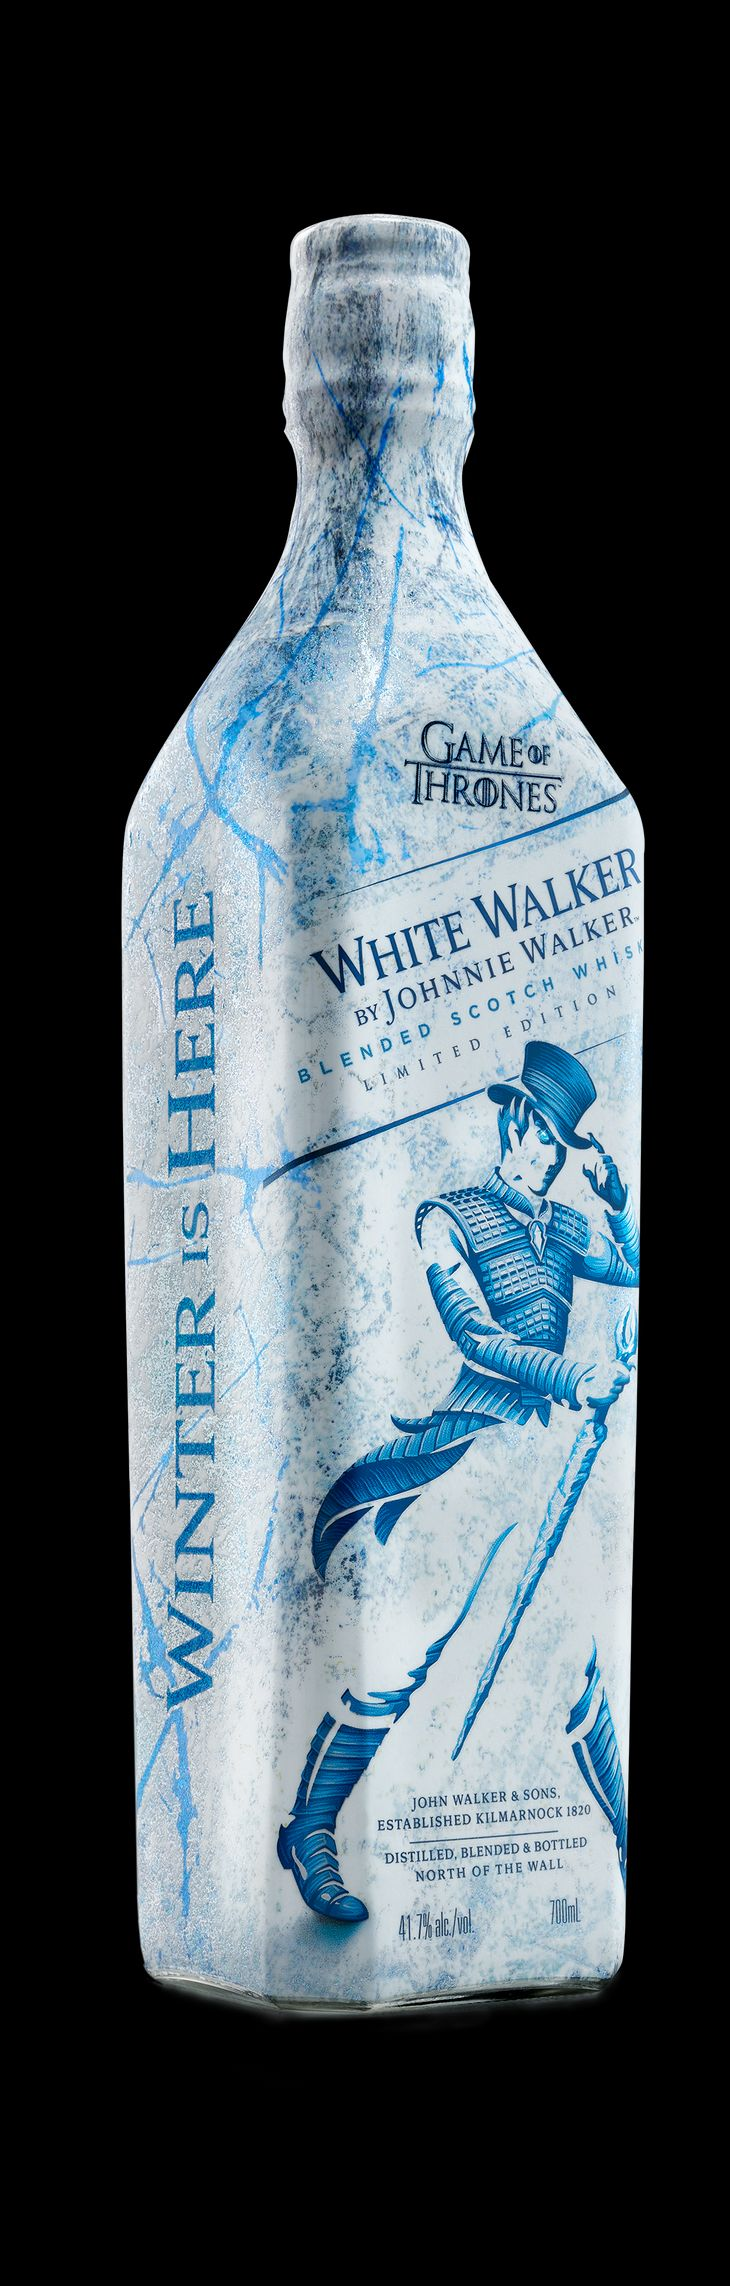 White Walker by Johnnie Walker, GoT-Sonder-Edition